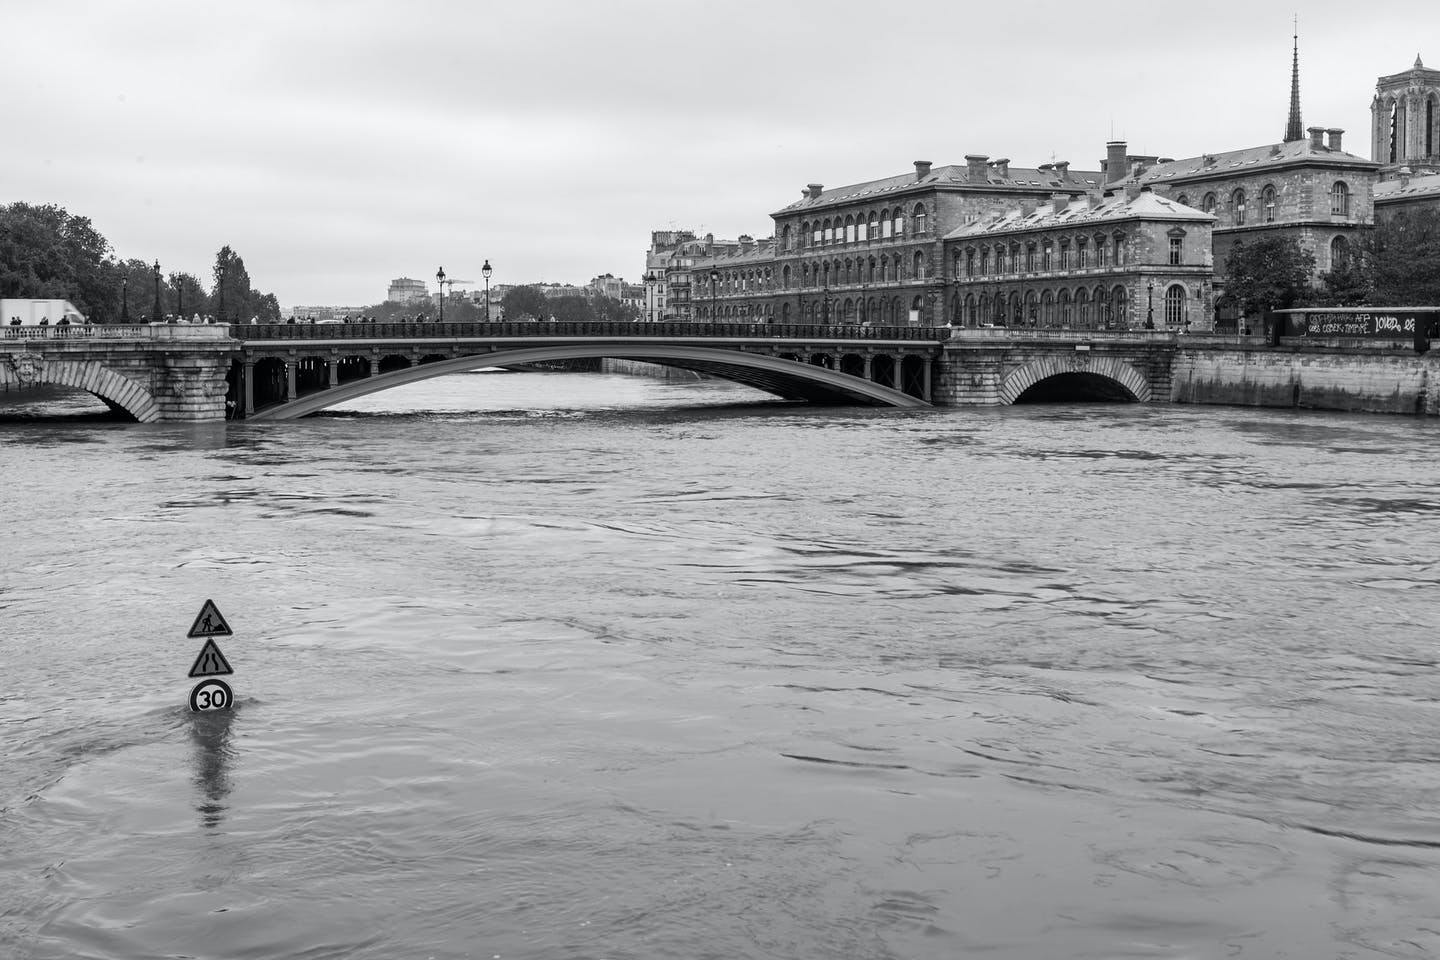 The river Seine in France